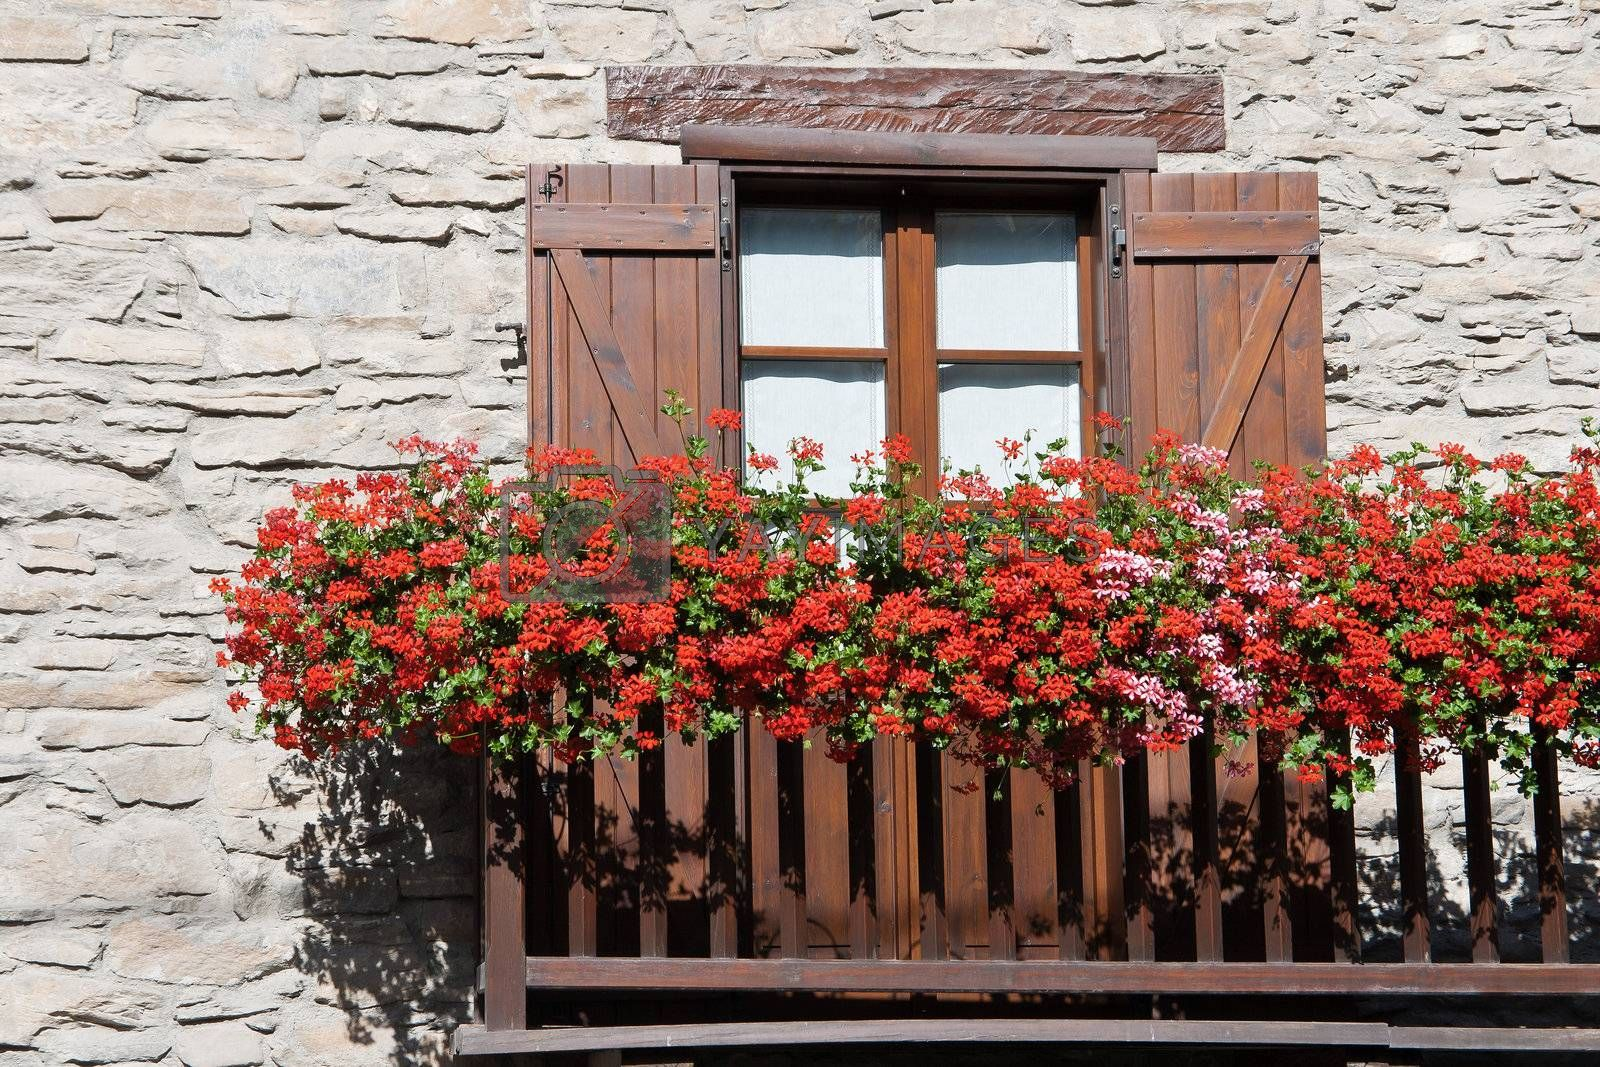 characteristic alpine balcony with red and pink geranium flowers